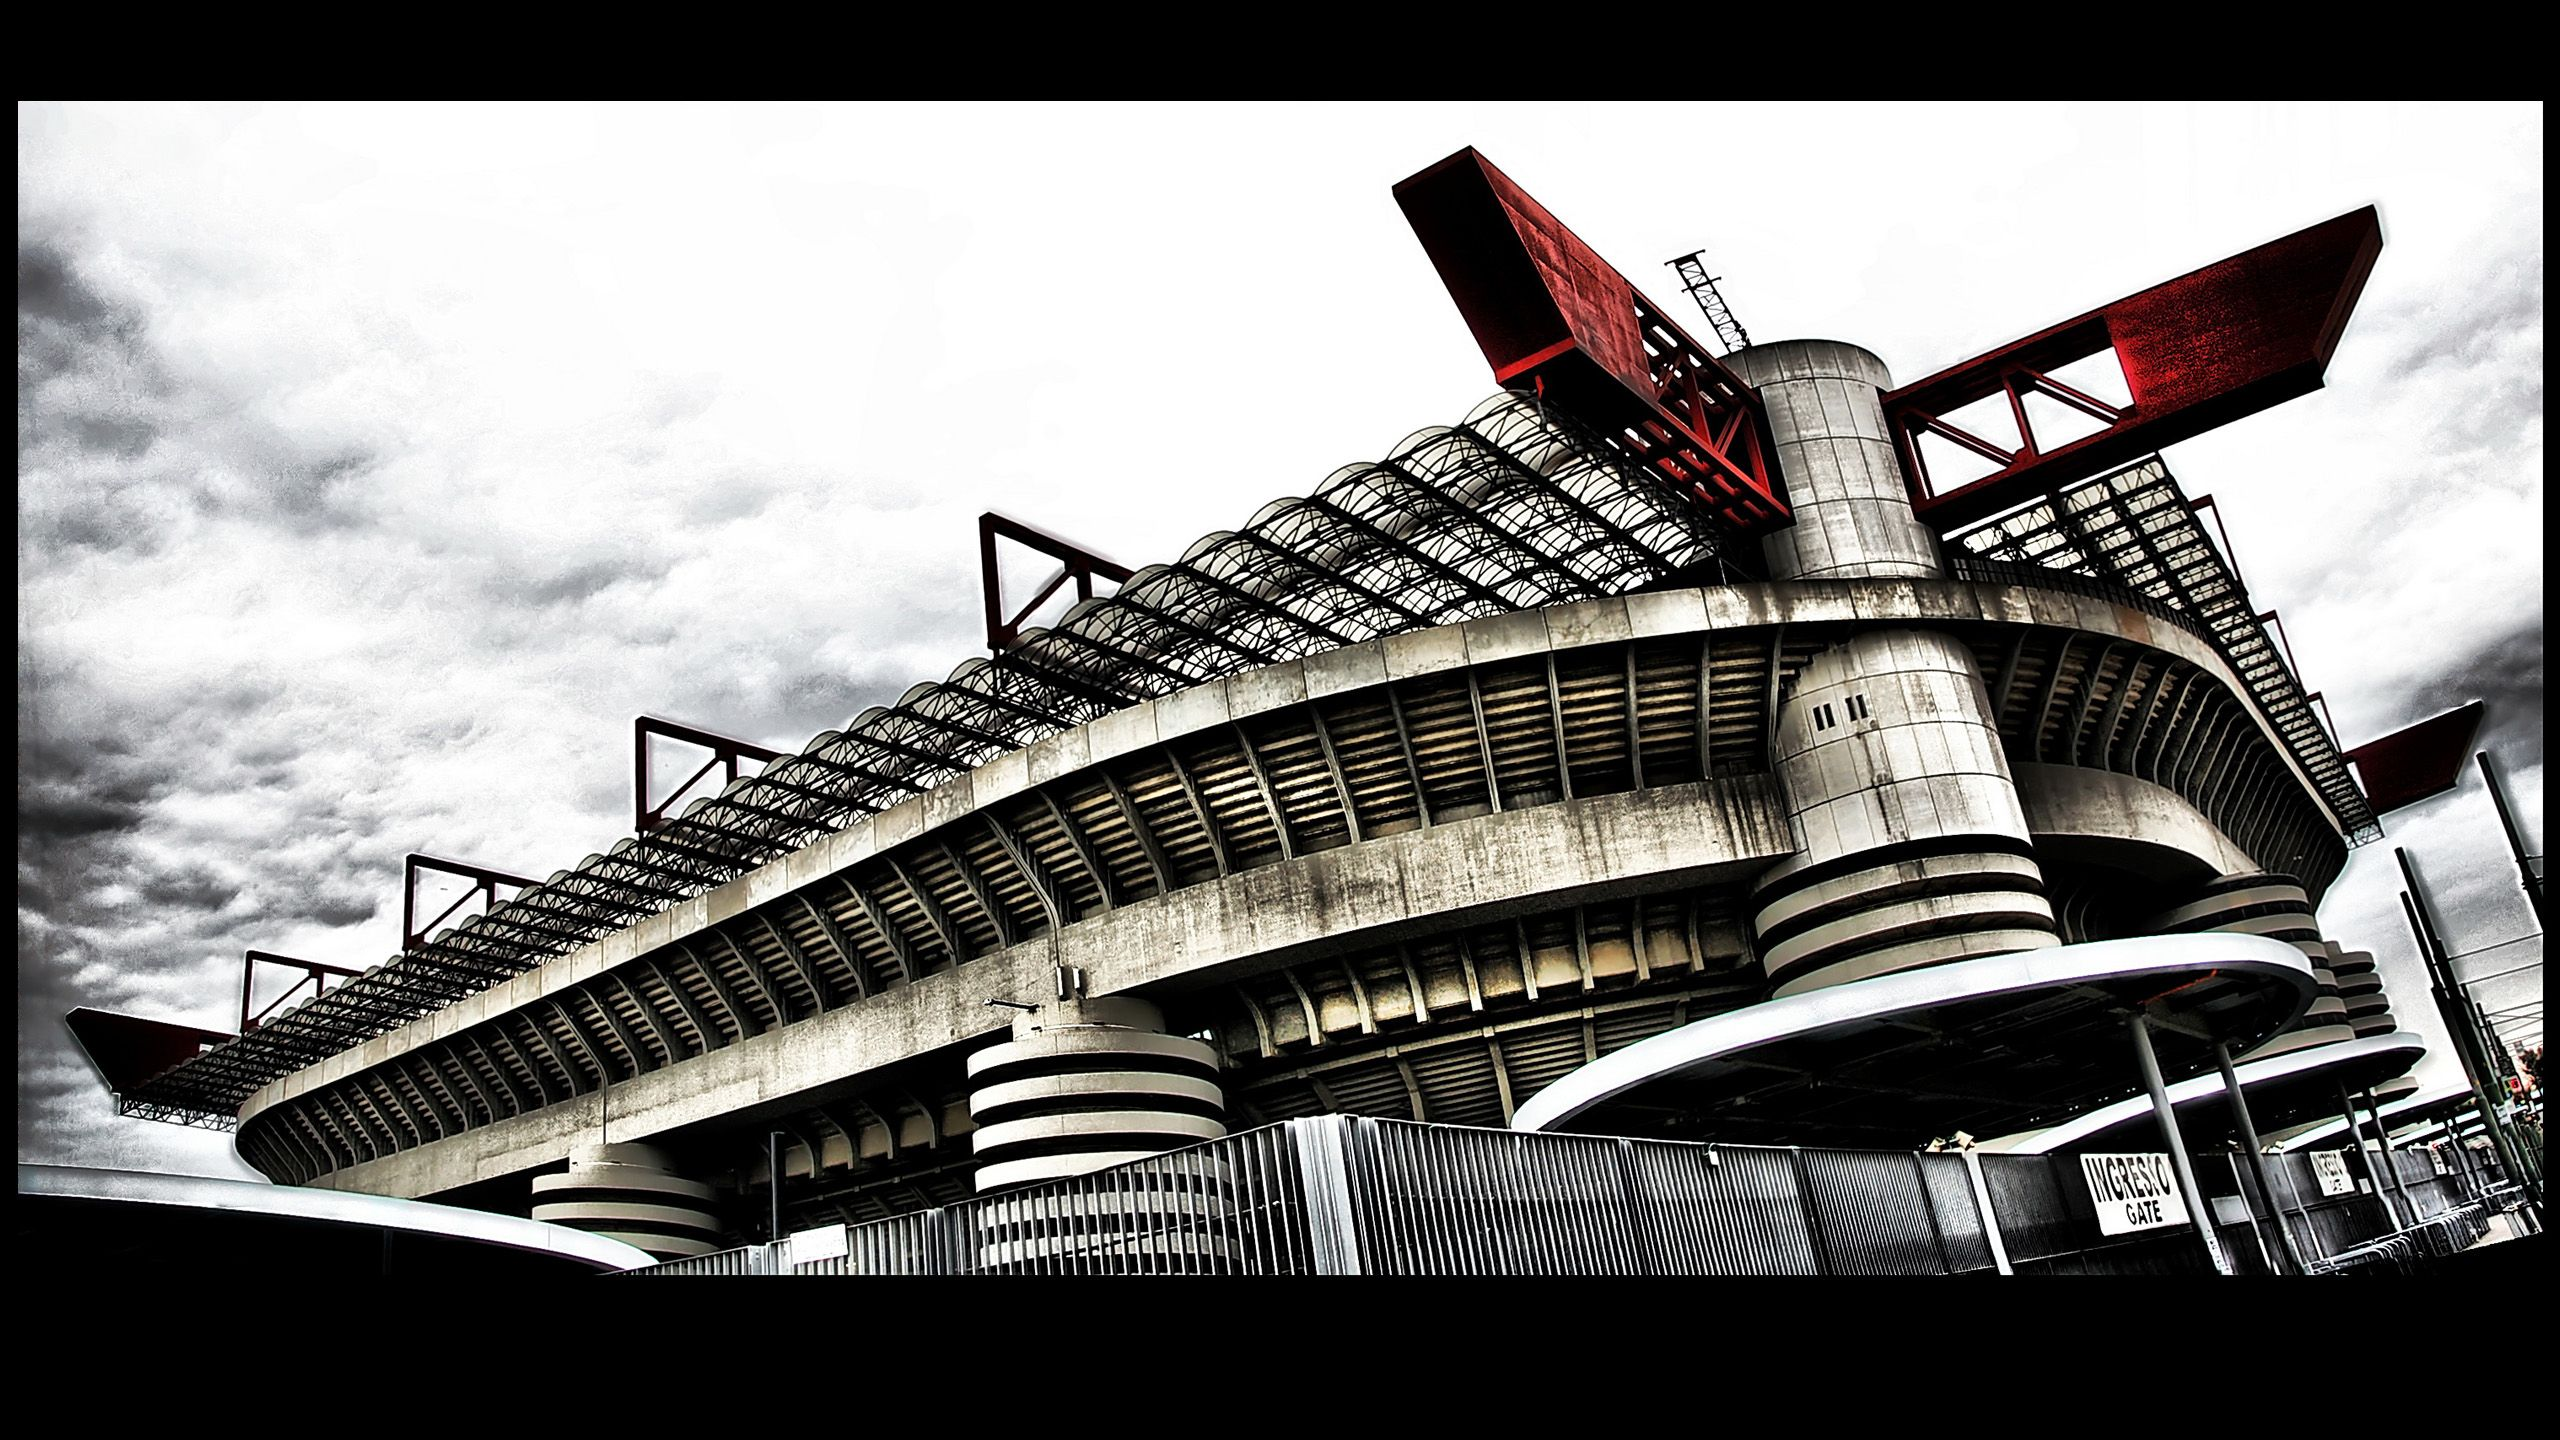 k 525 san siro milan - photo#34